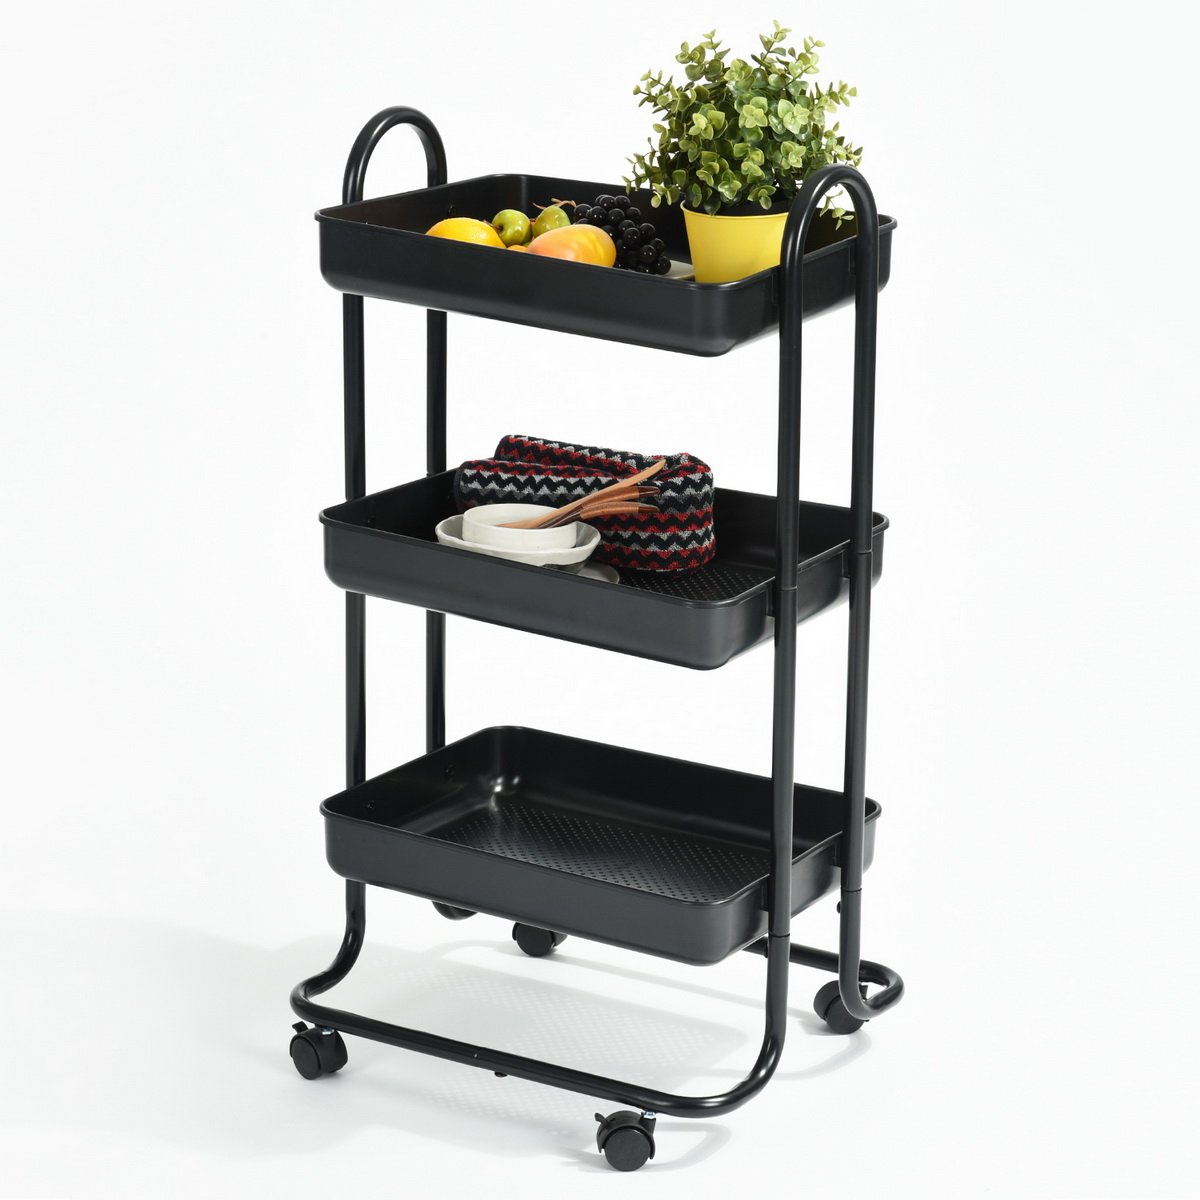 FurnitureR 3-Tier HOME Utility Rolling Cart with Large Storage and with Removable Handle and Plug Indoor or Outdoor Storage Organizer black